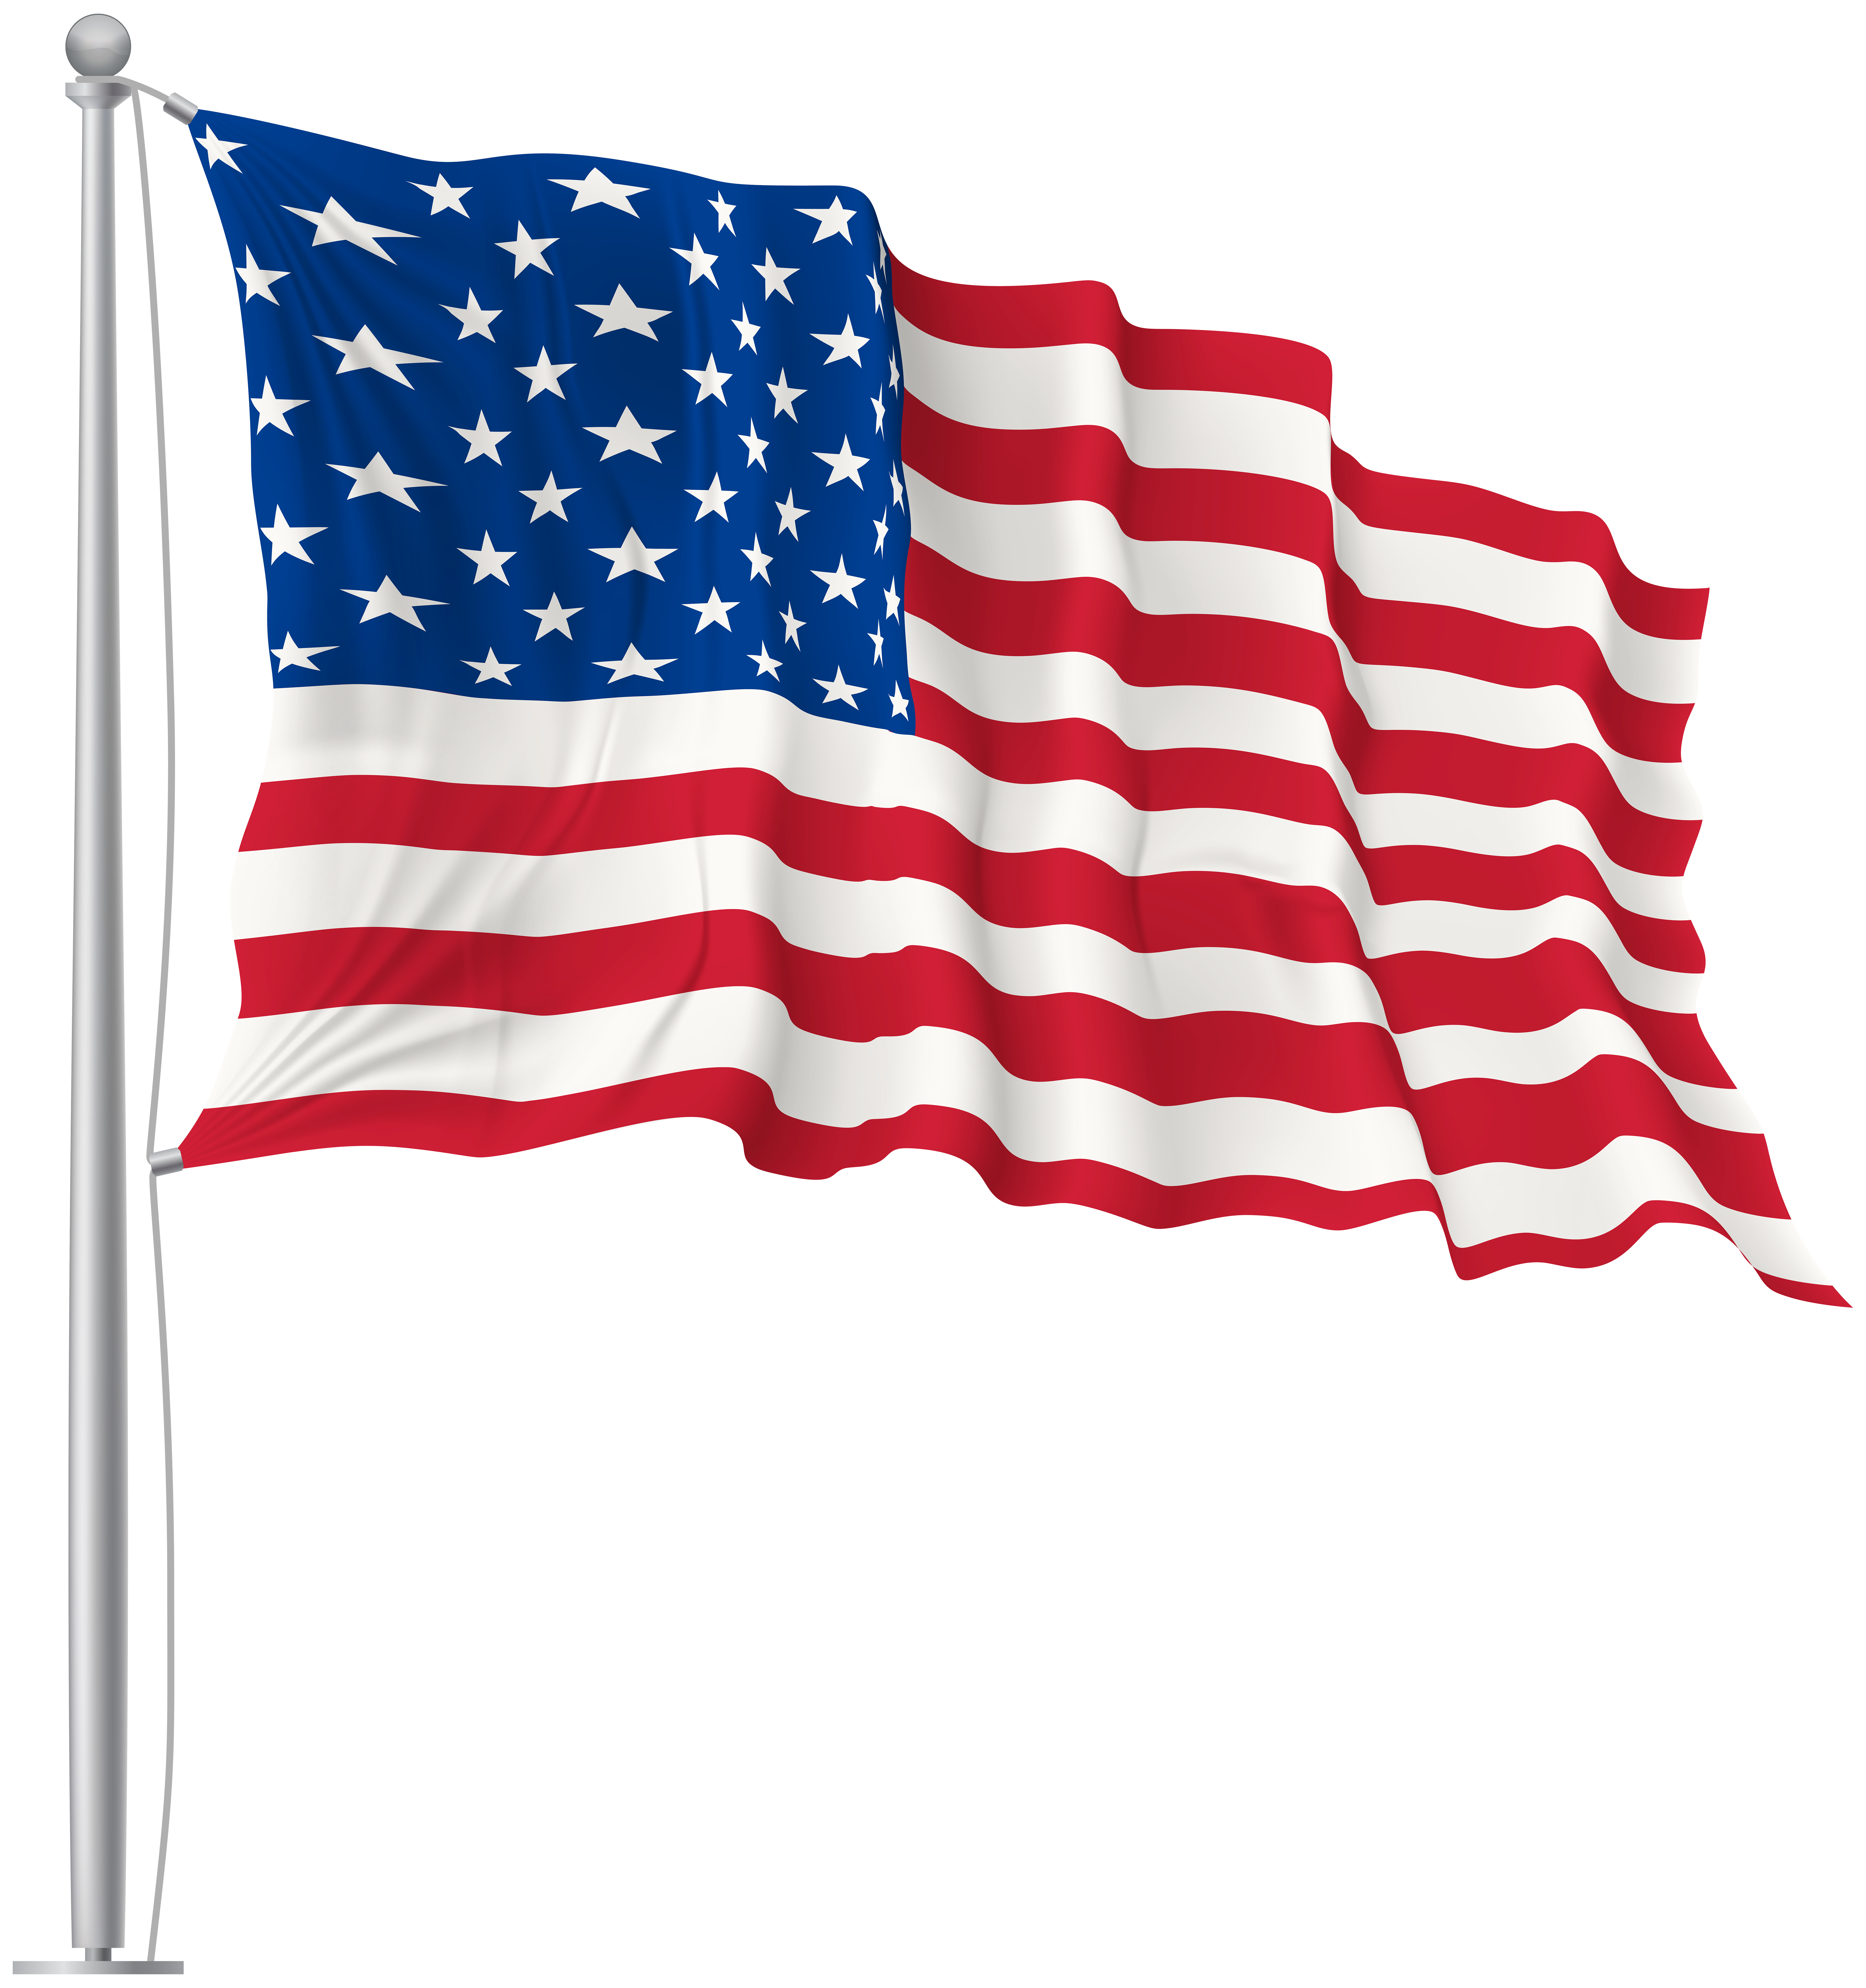 clip art free stock Flags clipart transparent background. Flag of the united.